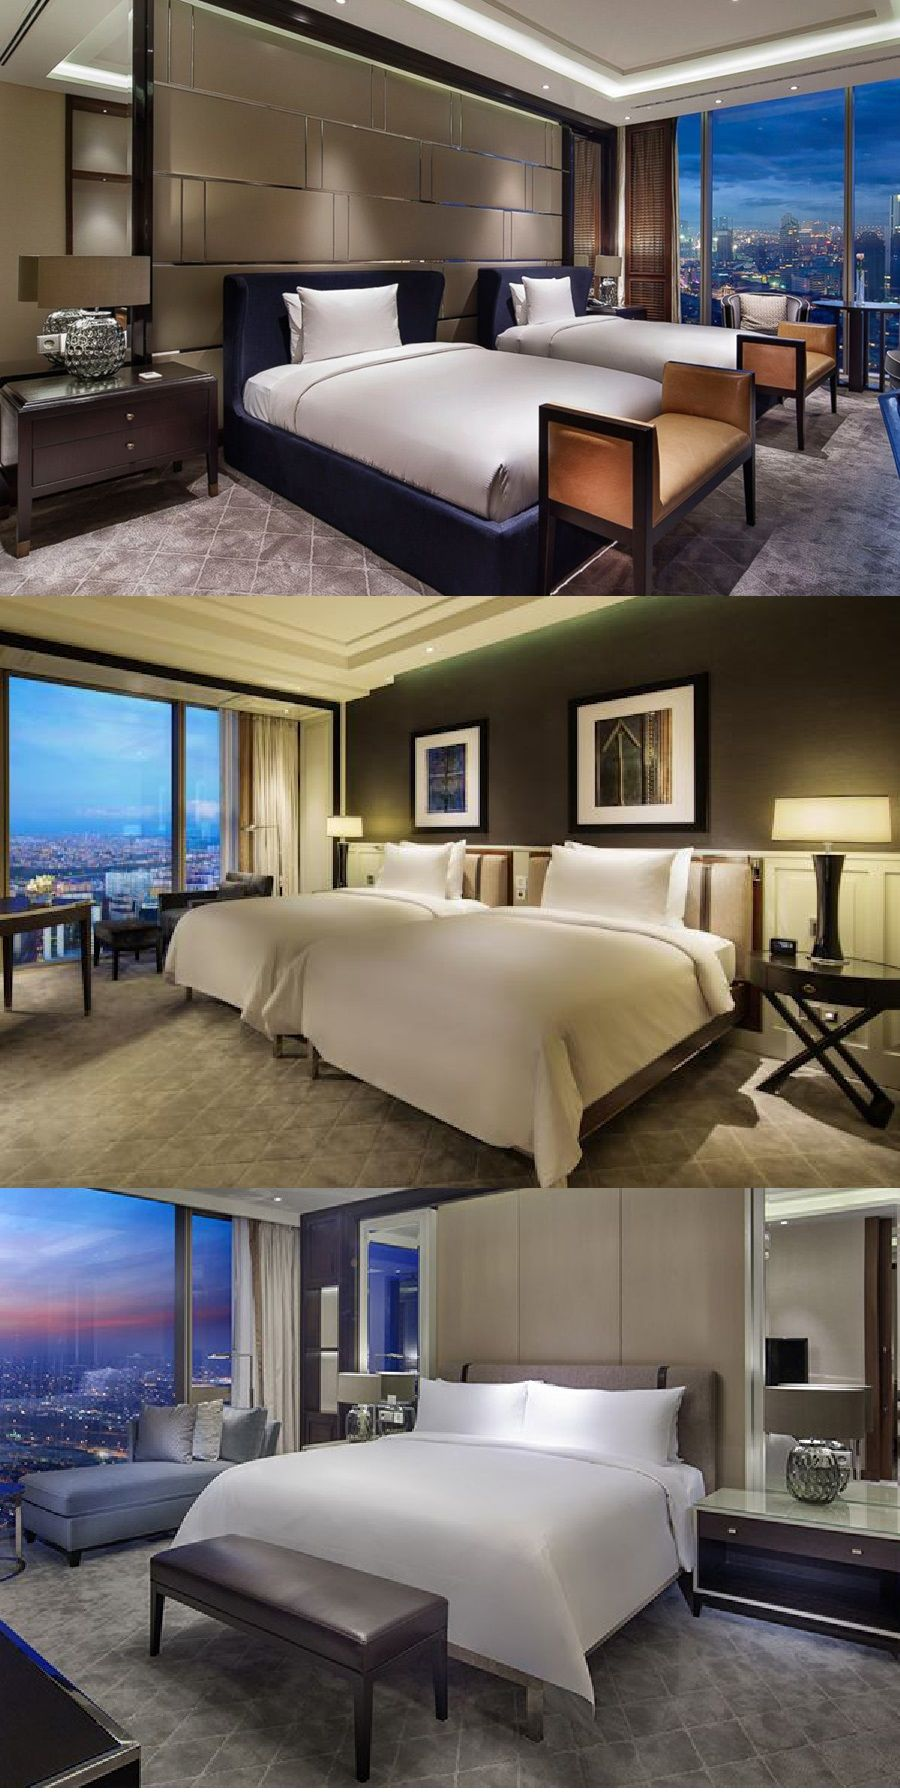 Luxury Hotel Bedrooms: Luxury Table Lamp, Featured At The Hilton Bomonti Hotel